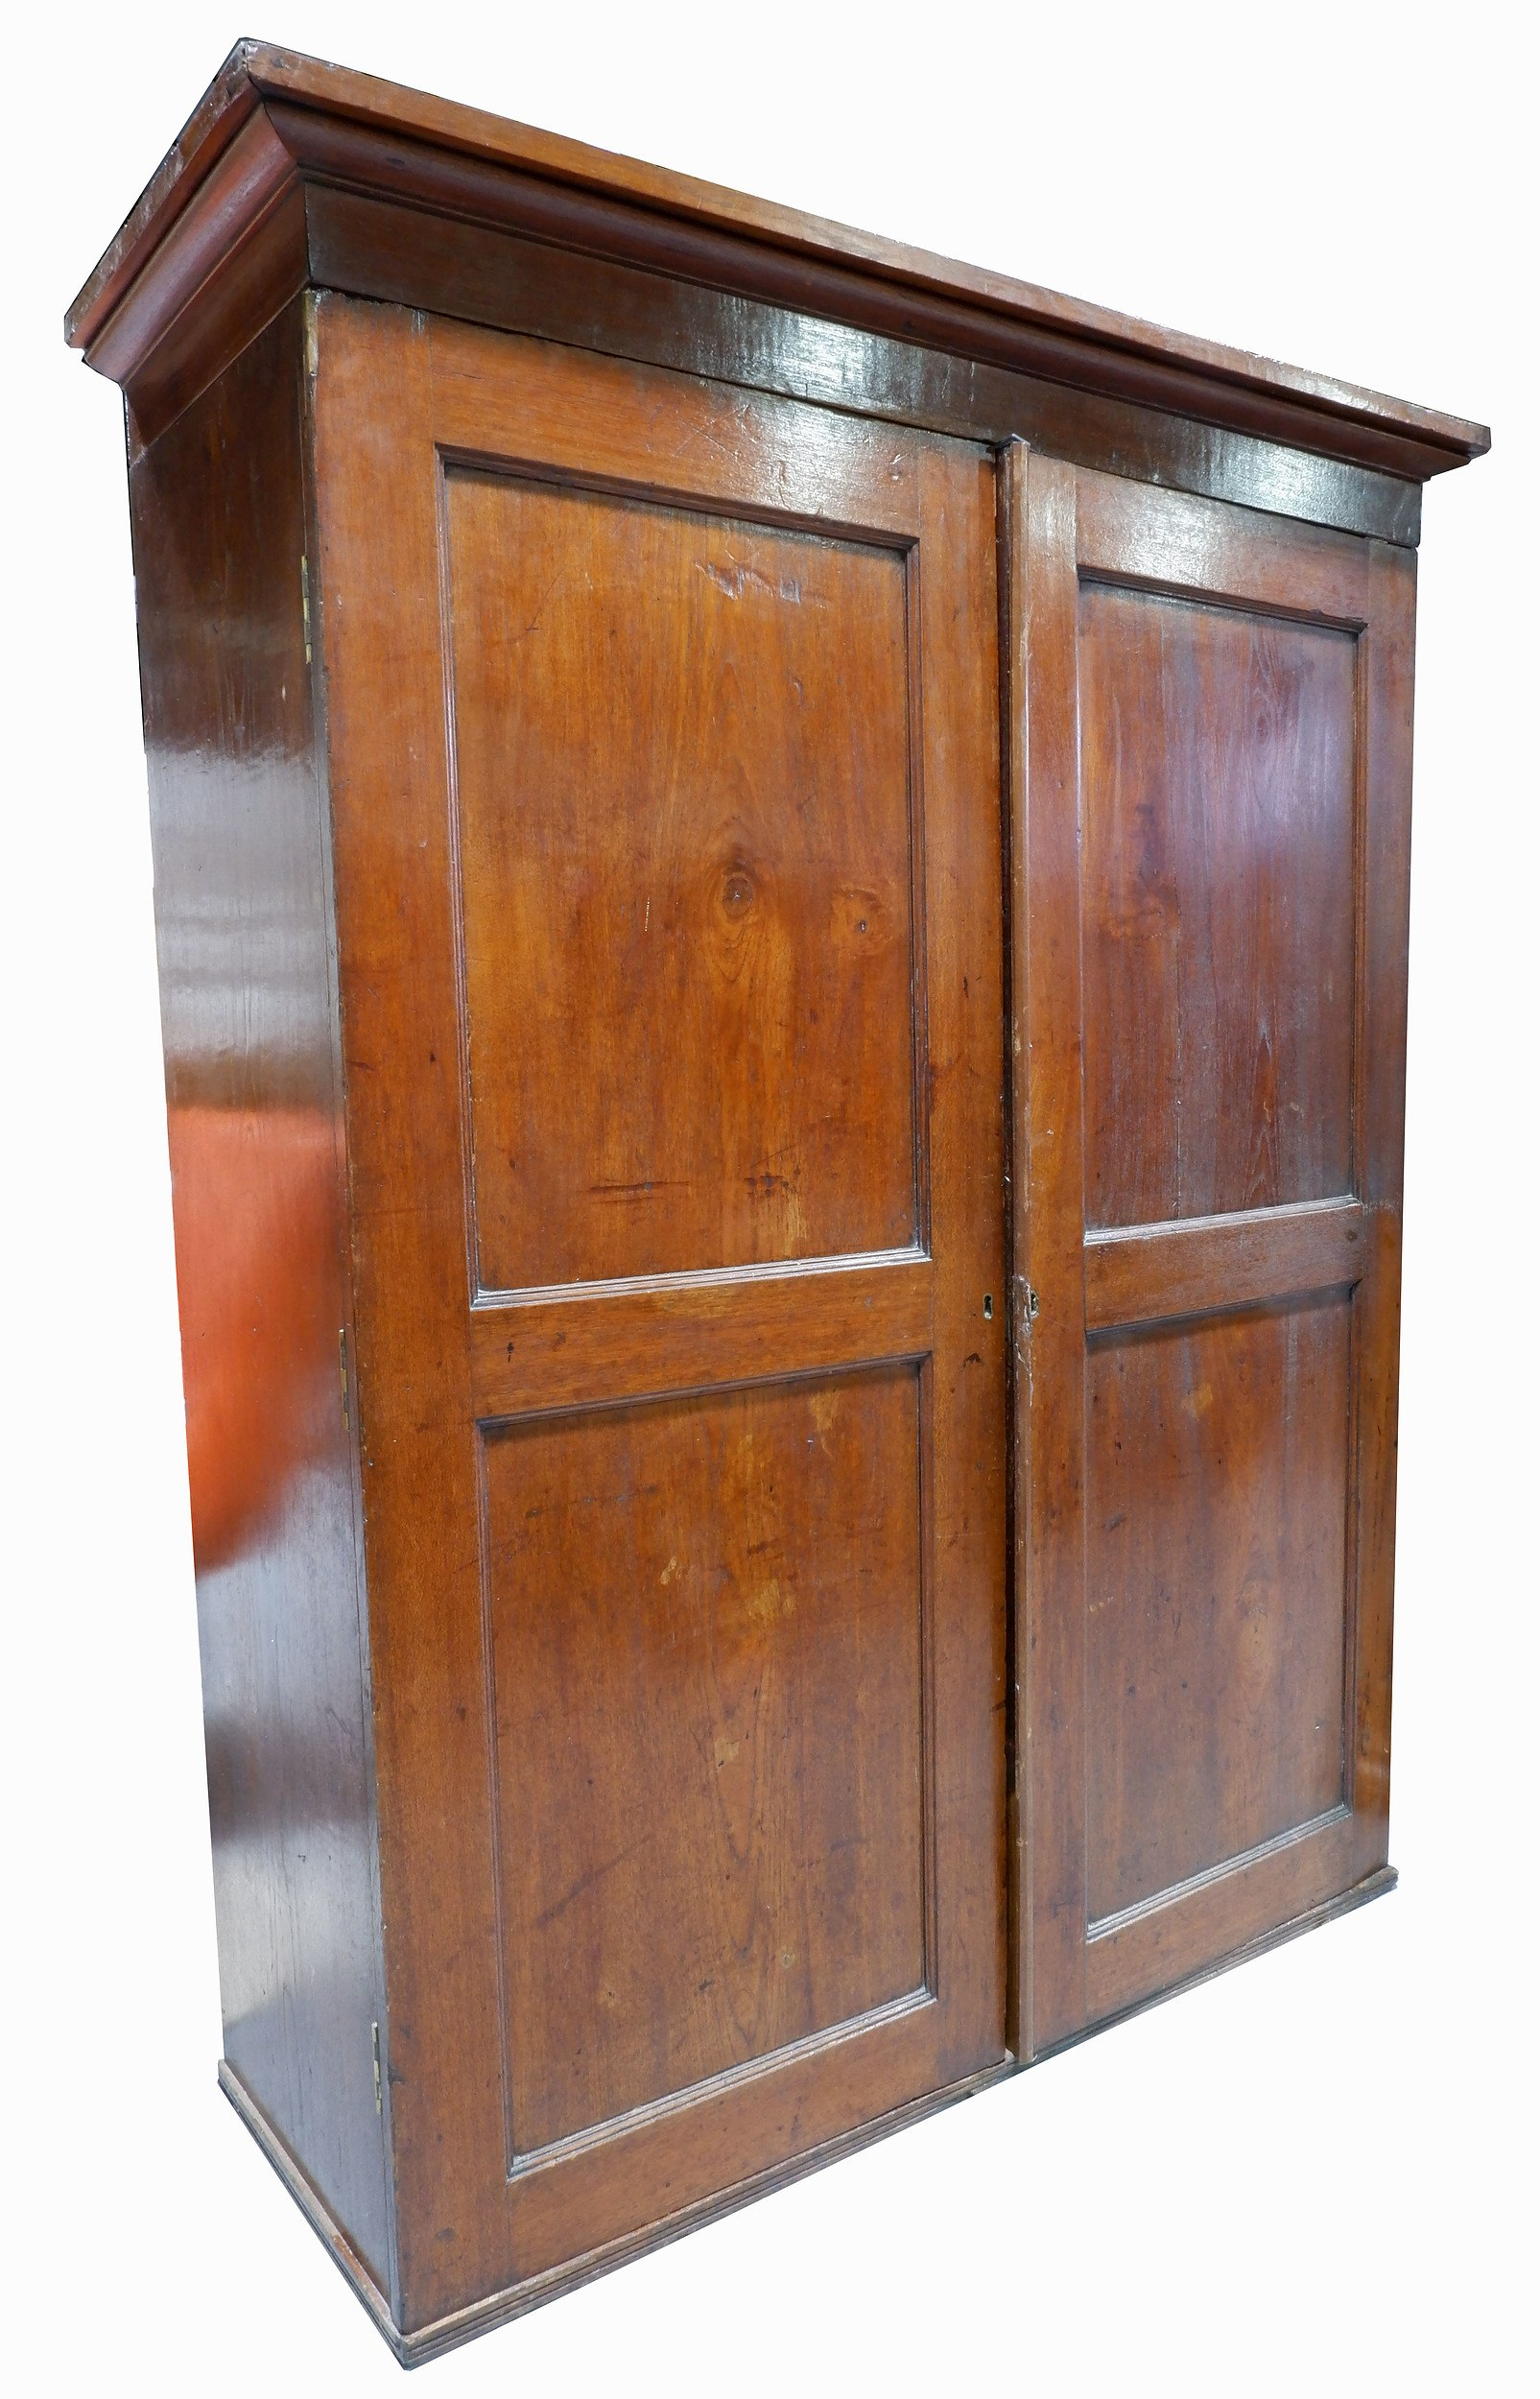 'Antique Cedar and Pine Shop Cabinet with Internal Pigeonholes and Drawers'